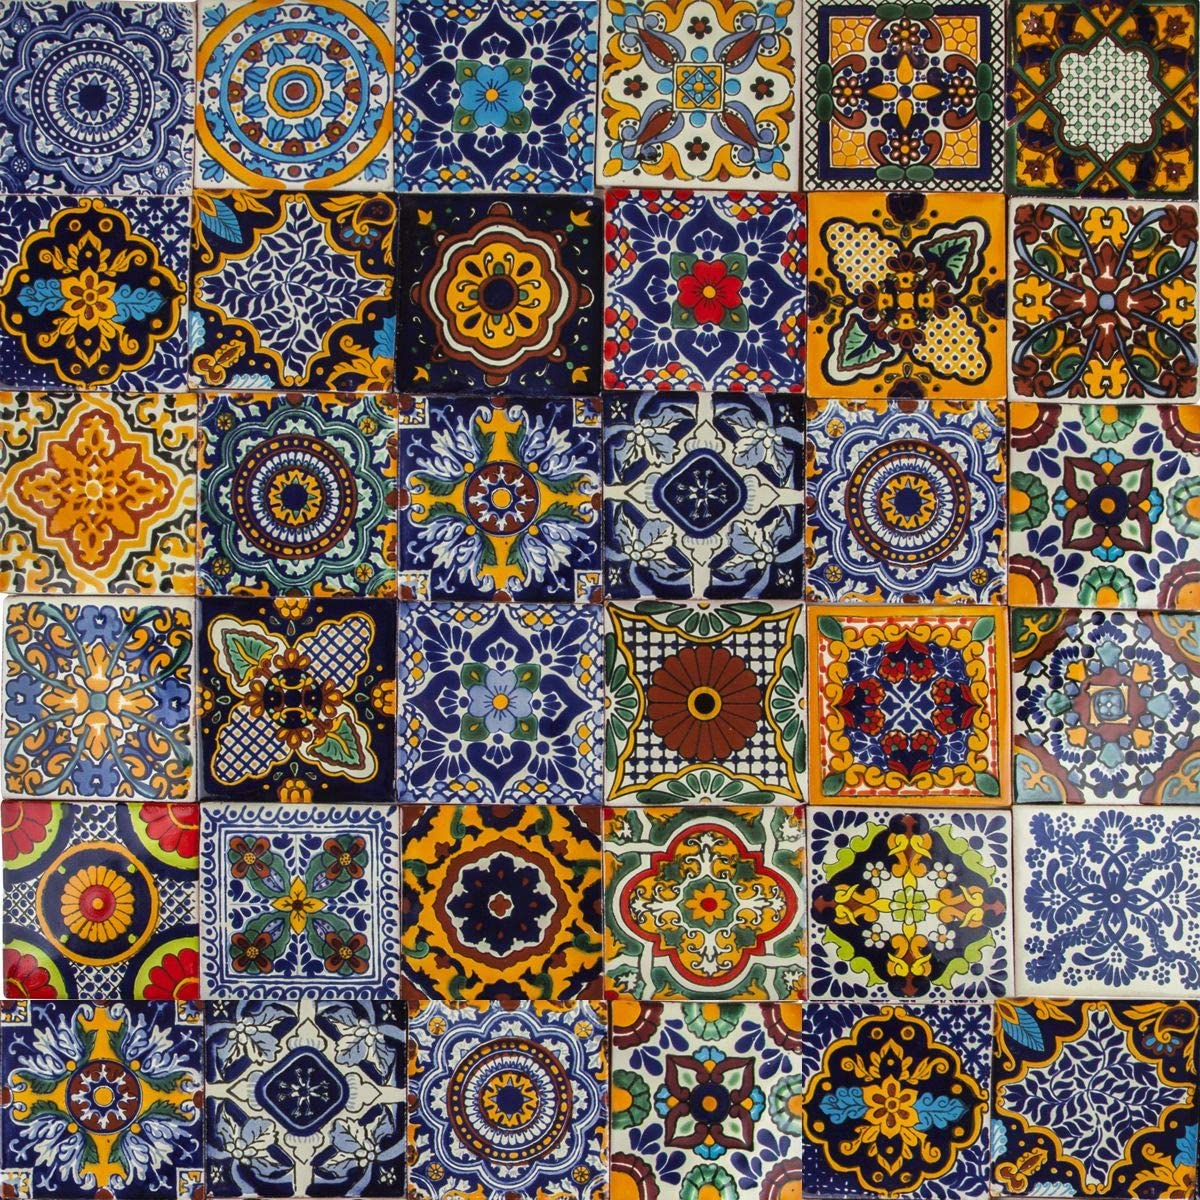 - Cerames Colorido - Mexican Tiles Pack Of 30 Tiles 10,5x10,5 Cm